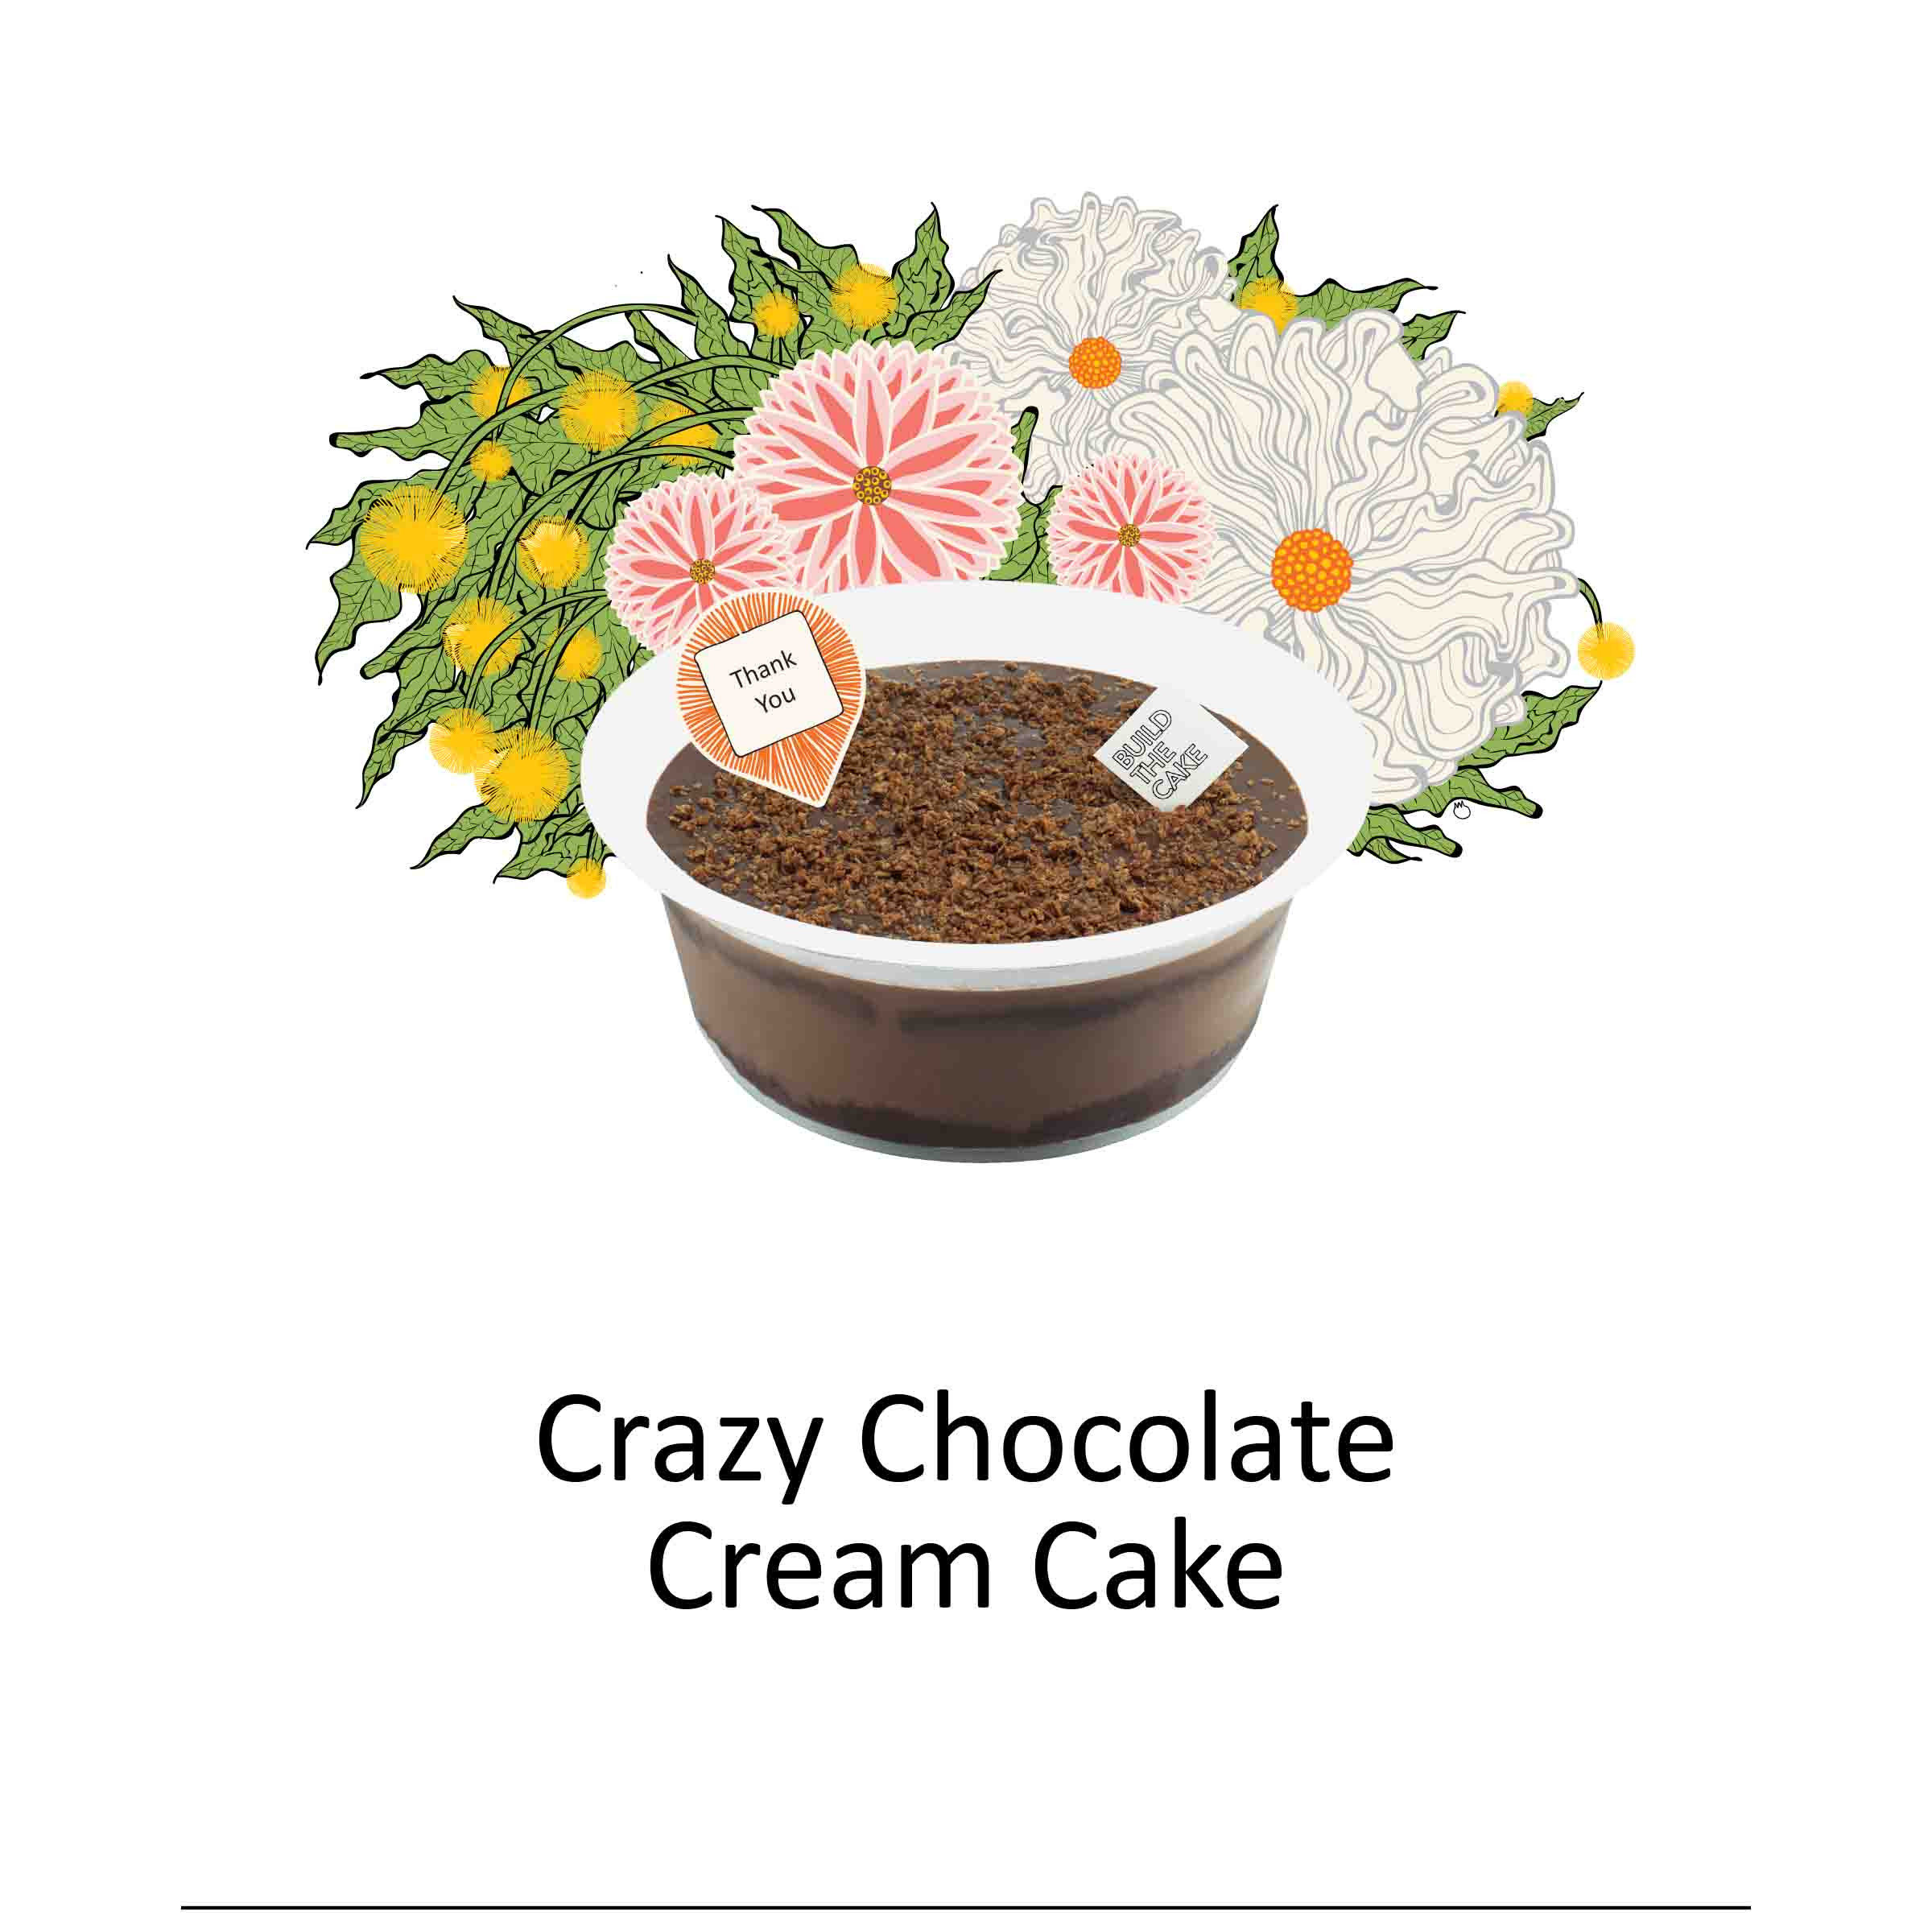 Crazy Chocolate Cream Cake